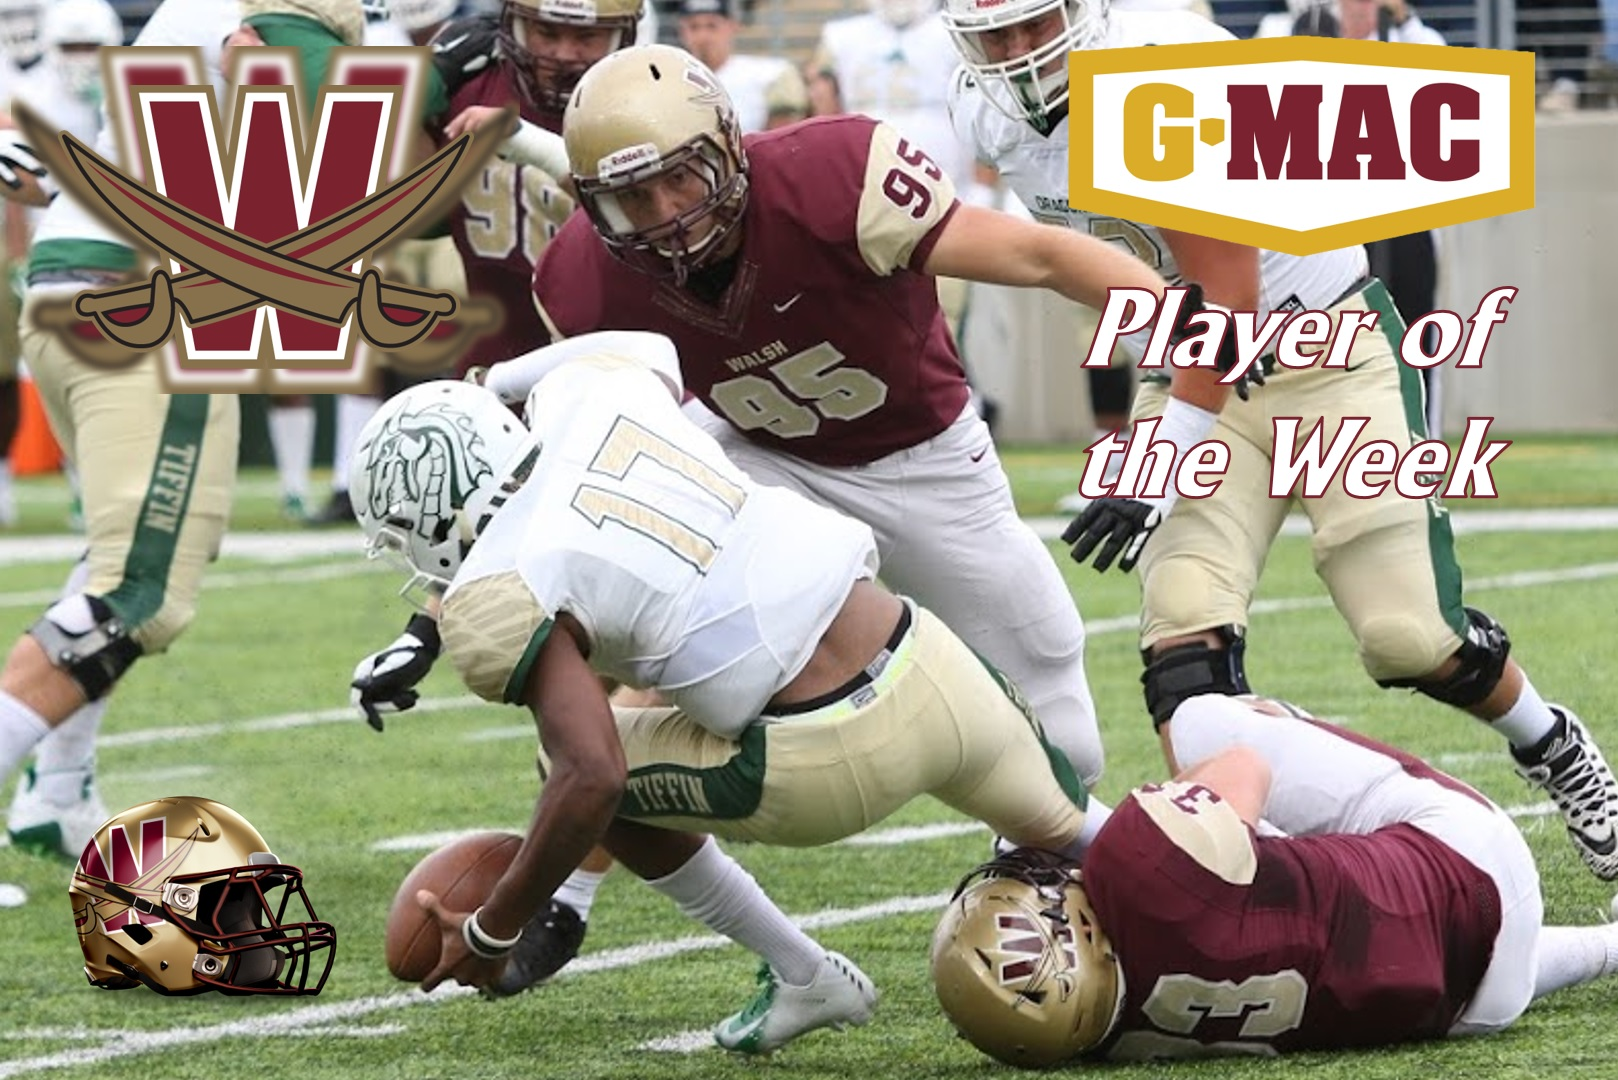 Shellenbarger Named G-MAC Defensive Player of the Week